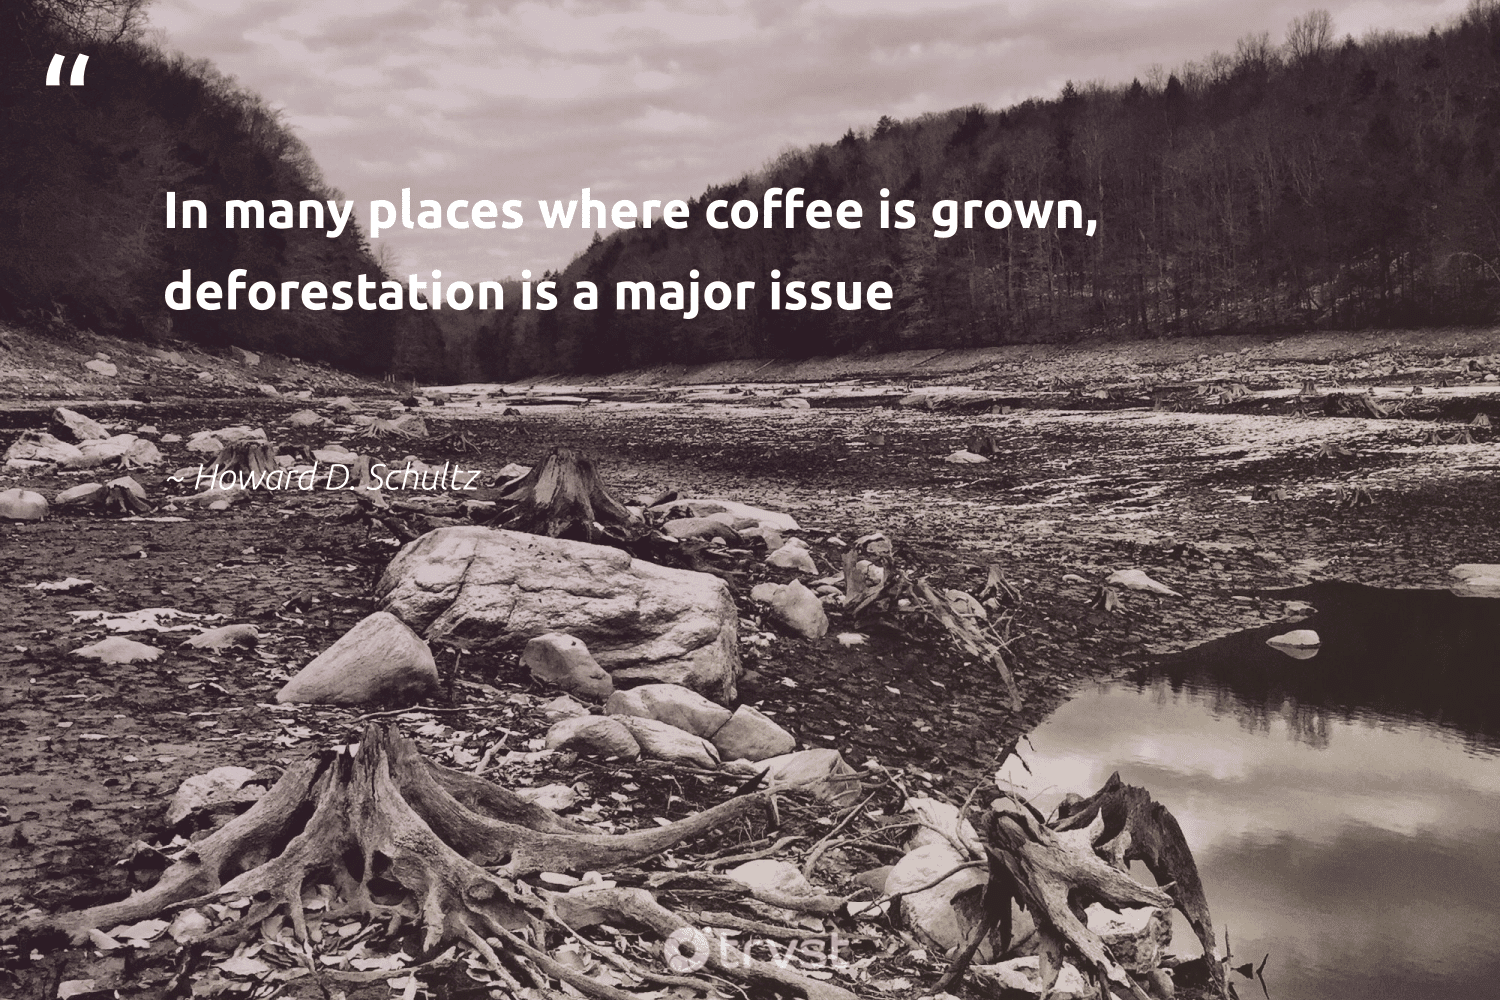 """""""In many places where coffee is grown, deforestation is a major issue""""  - Howard D. Schultz #trvst #quotes"""